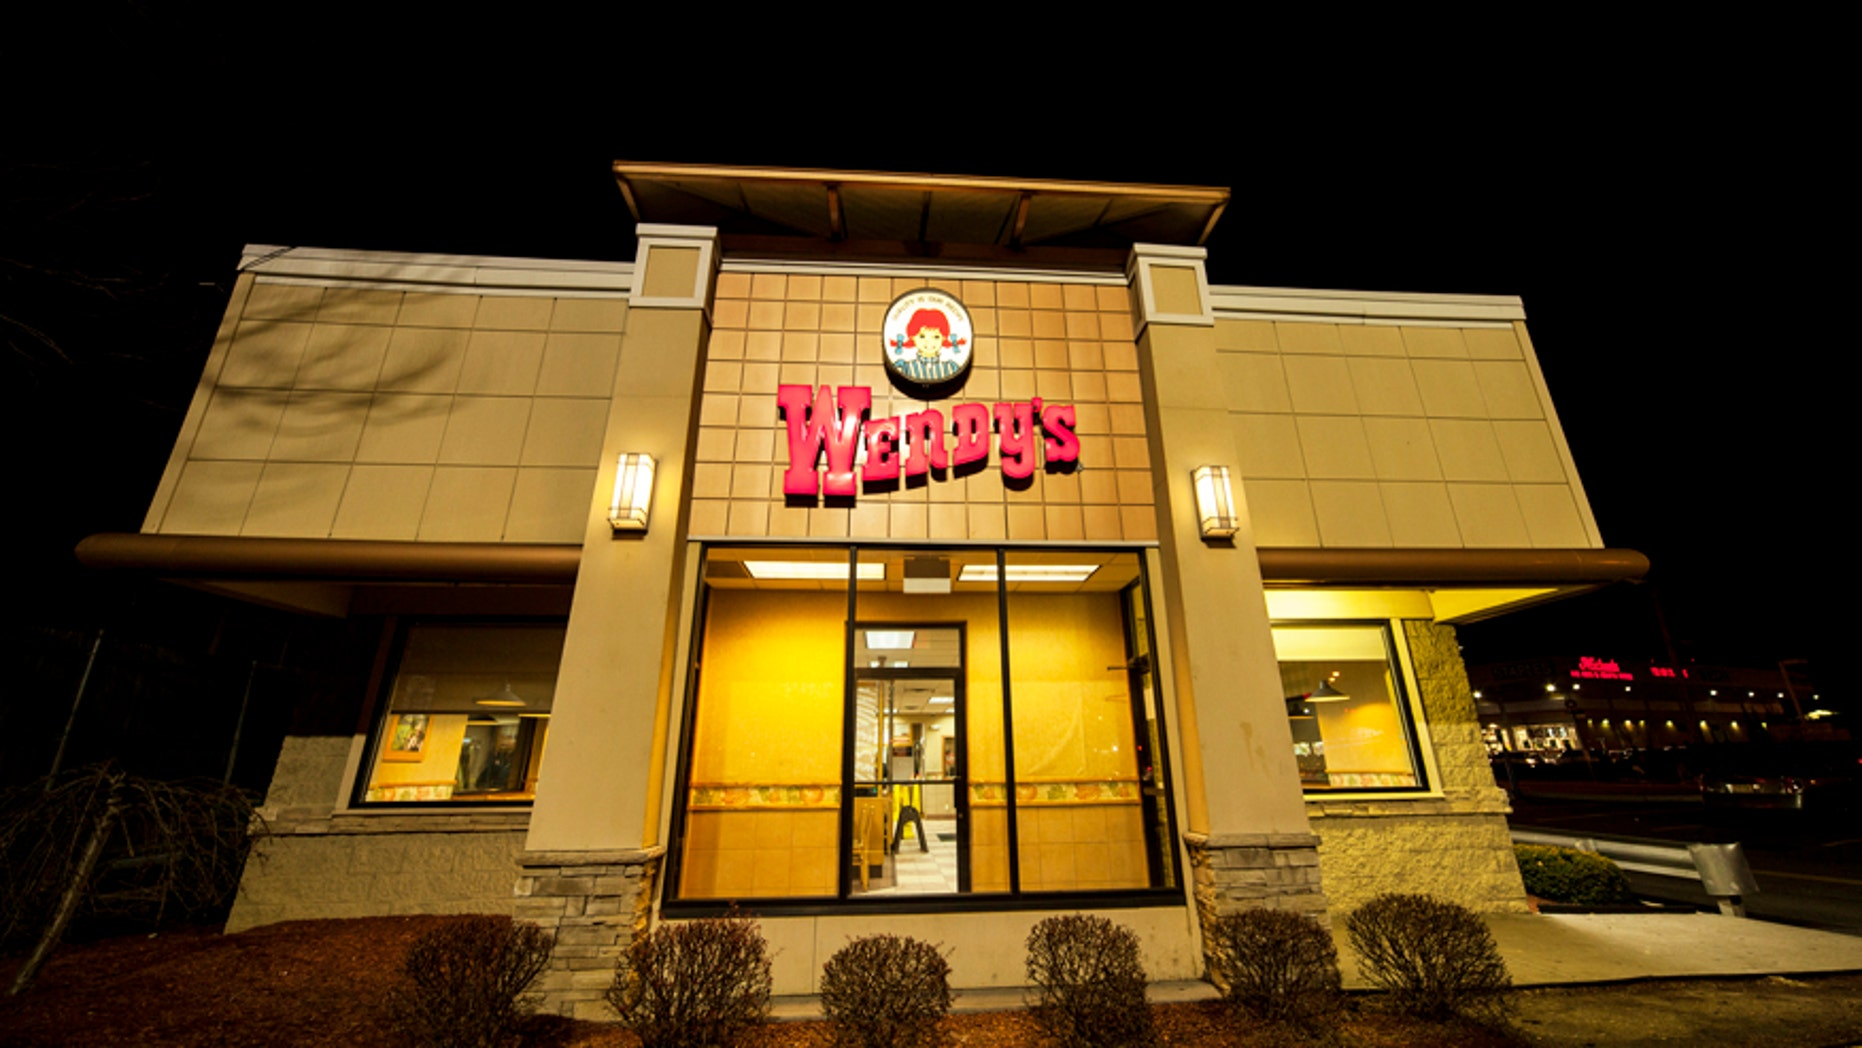 New York City, NY, USA - December 17, 2014: View of Wendy's fast food restaurant in Rego Park / Forest Hills, Queens. On Metropolitan Ave.